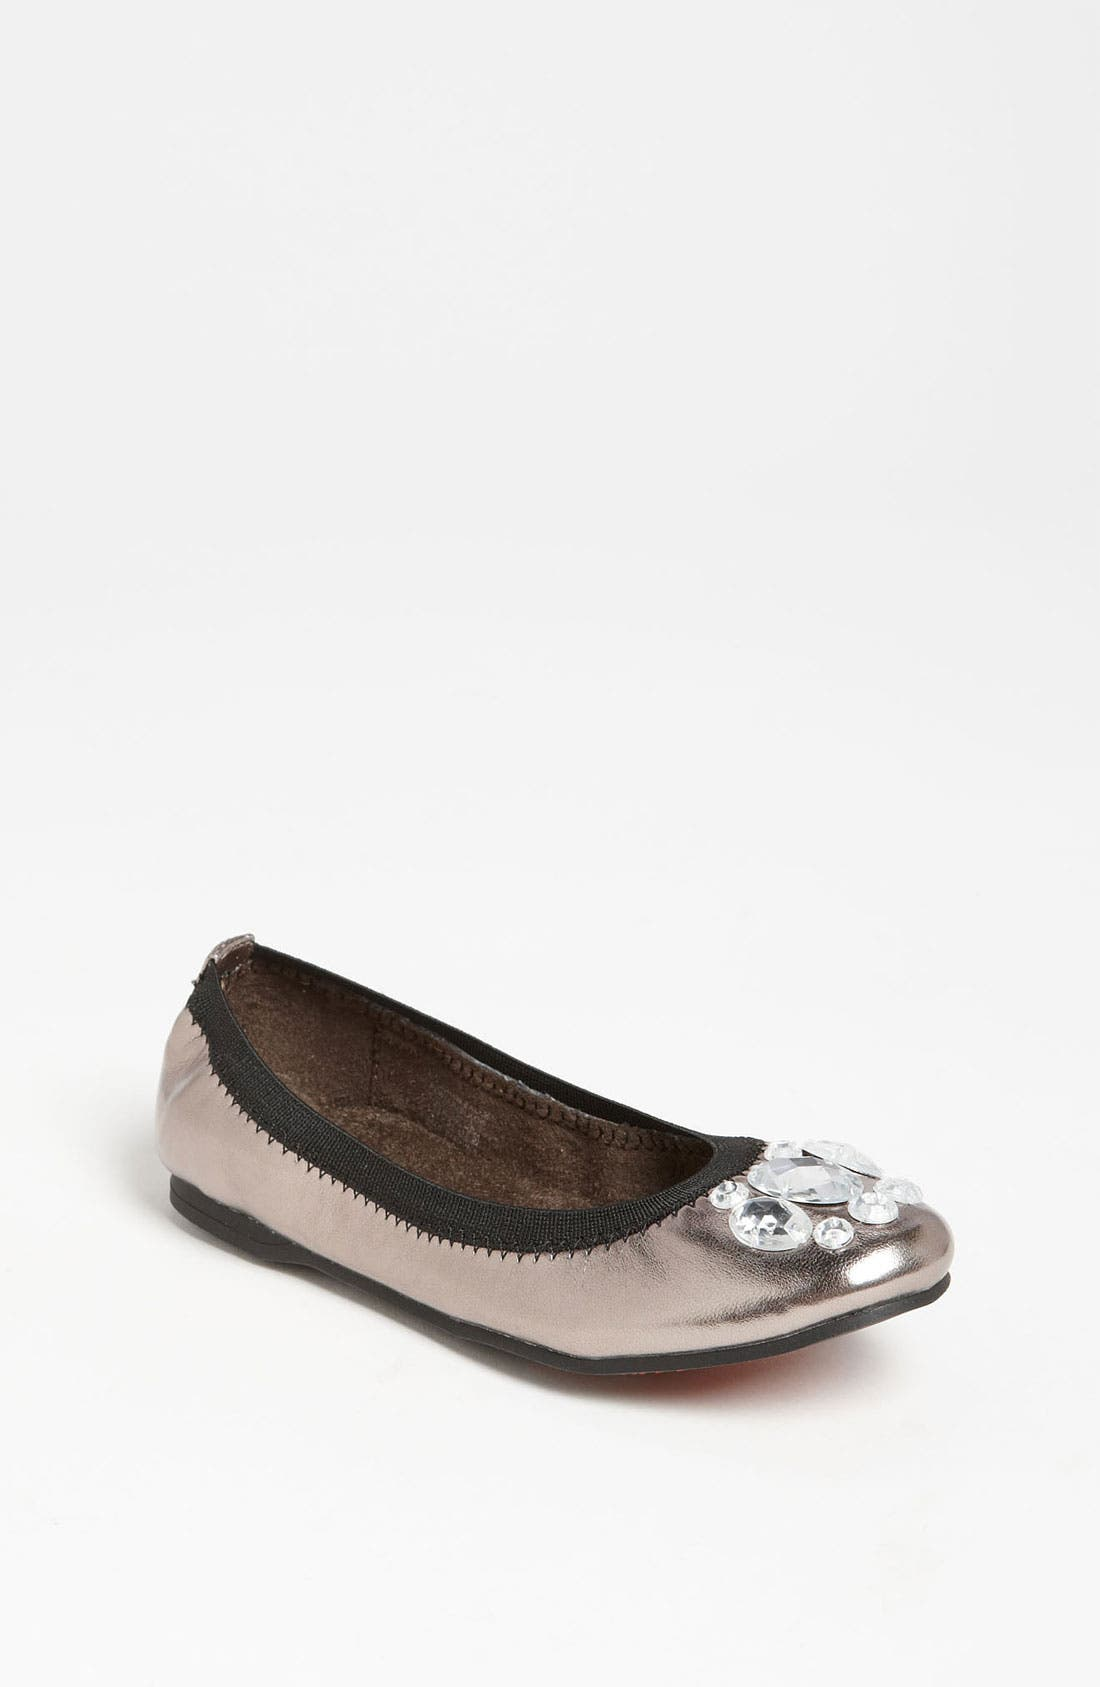 Main Image - KORS Michael Kors 'Bradshaw' Flat (Little Kid & Big Kid)